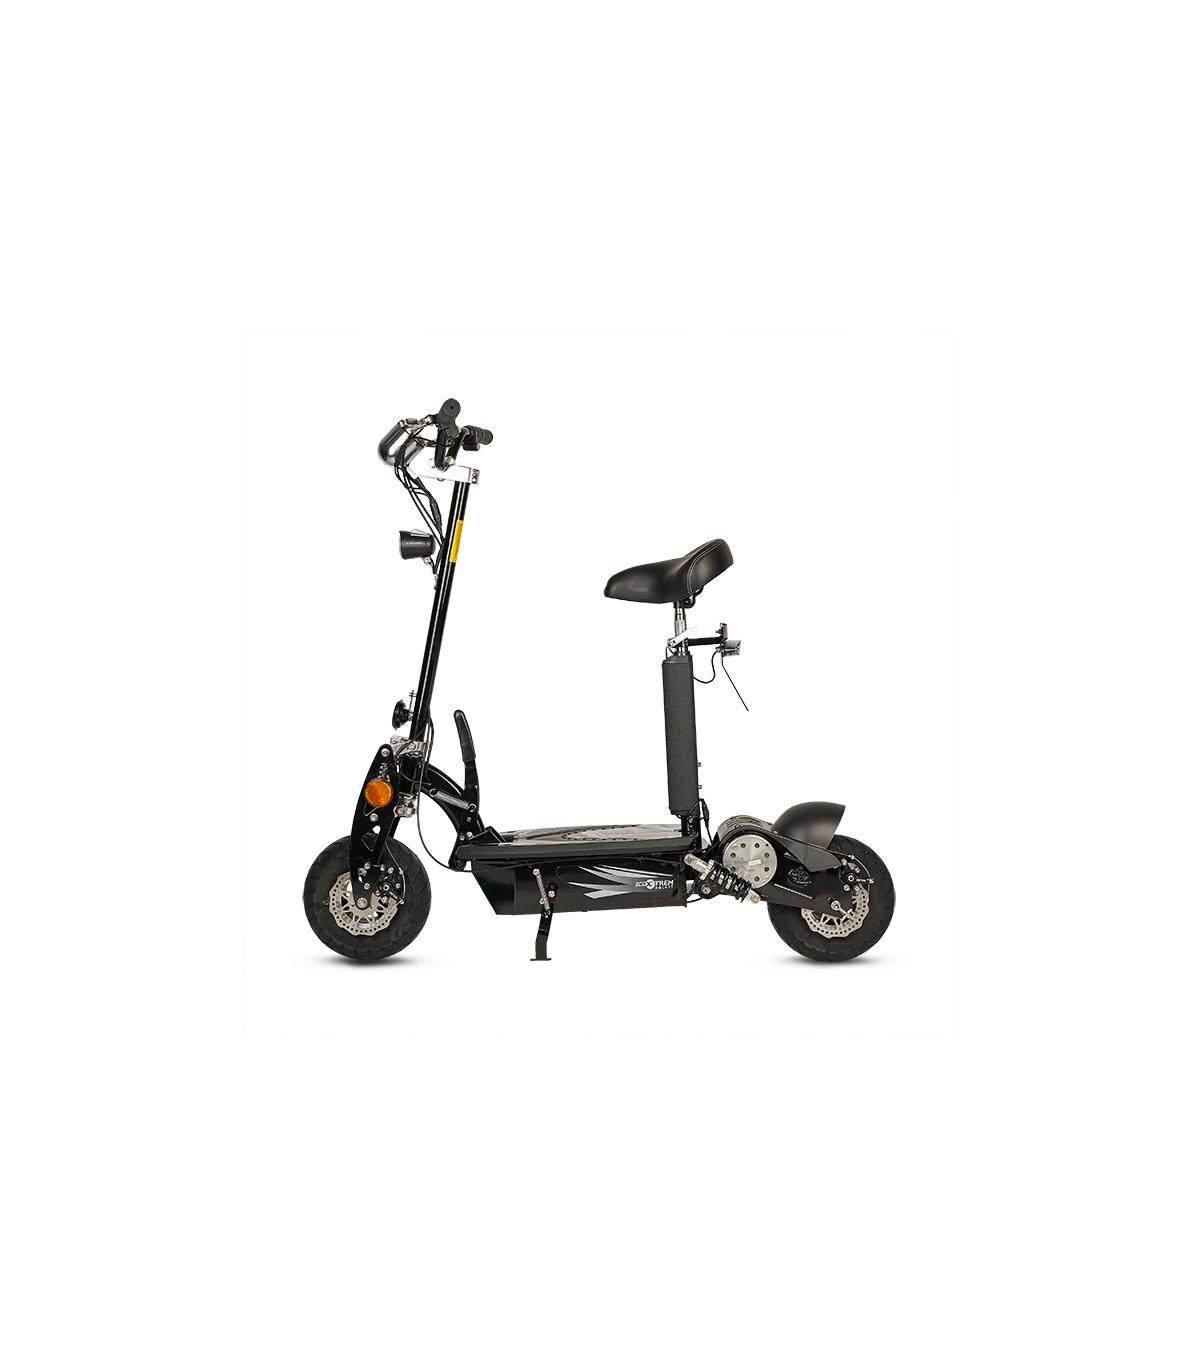 Patinete-Scooter Eléctrico, negro, plegable, 1000W, matriculable - Referencia: ROCKET-A/BLACK